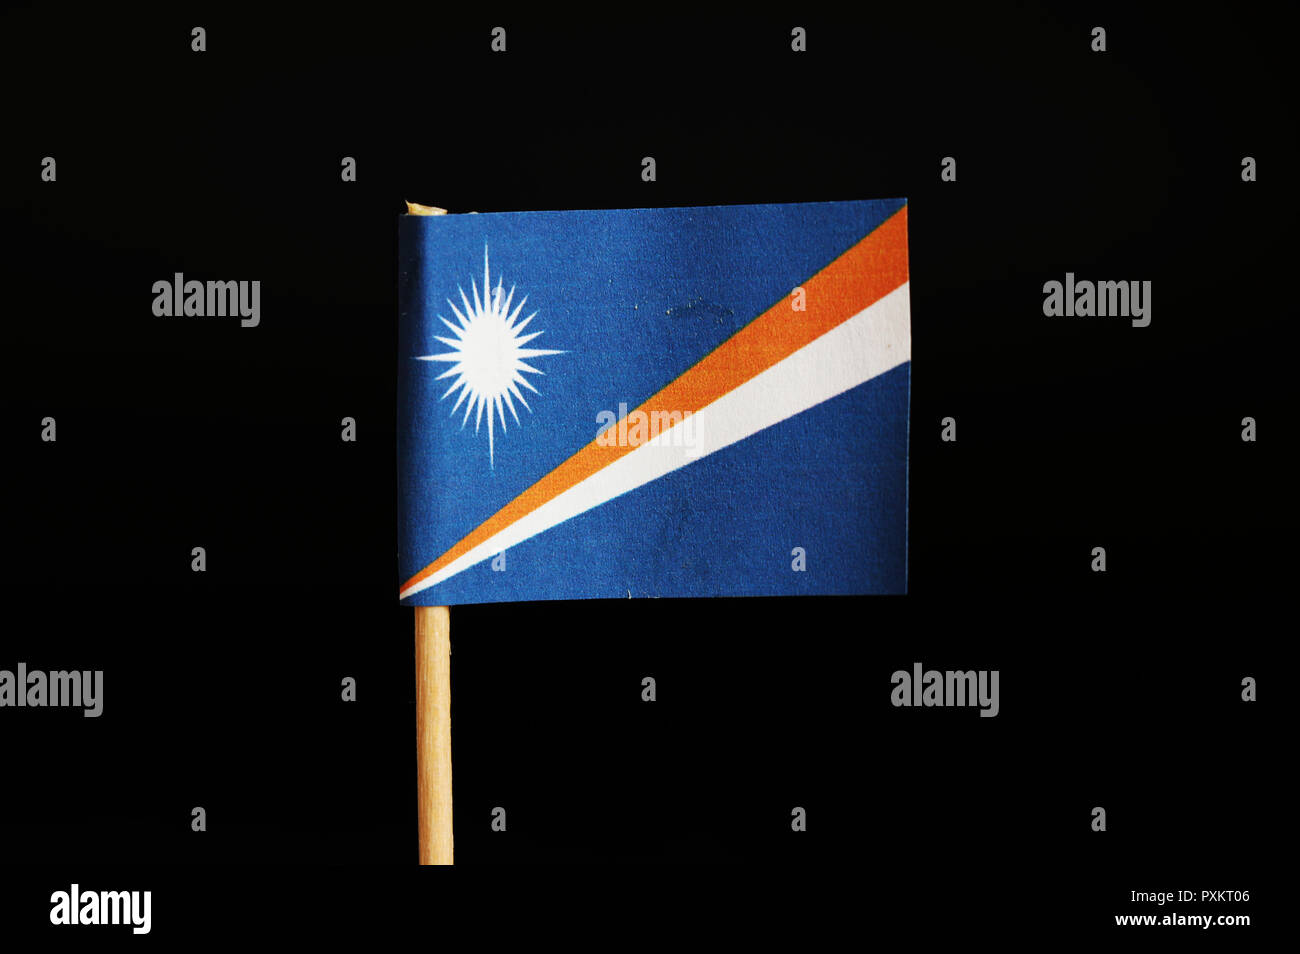 A official flag of marshall islands on wooden stick on black background. Marshall islands are located in pacific ocean and belongs to oceania. Sun on  - Stock Image